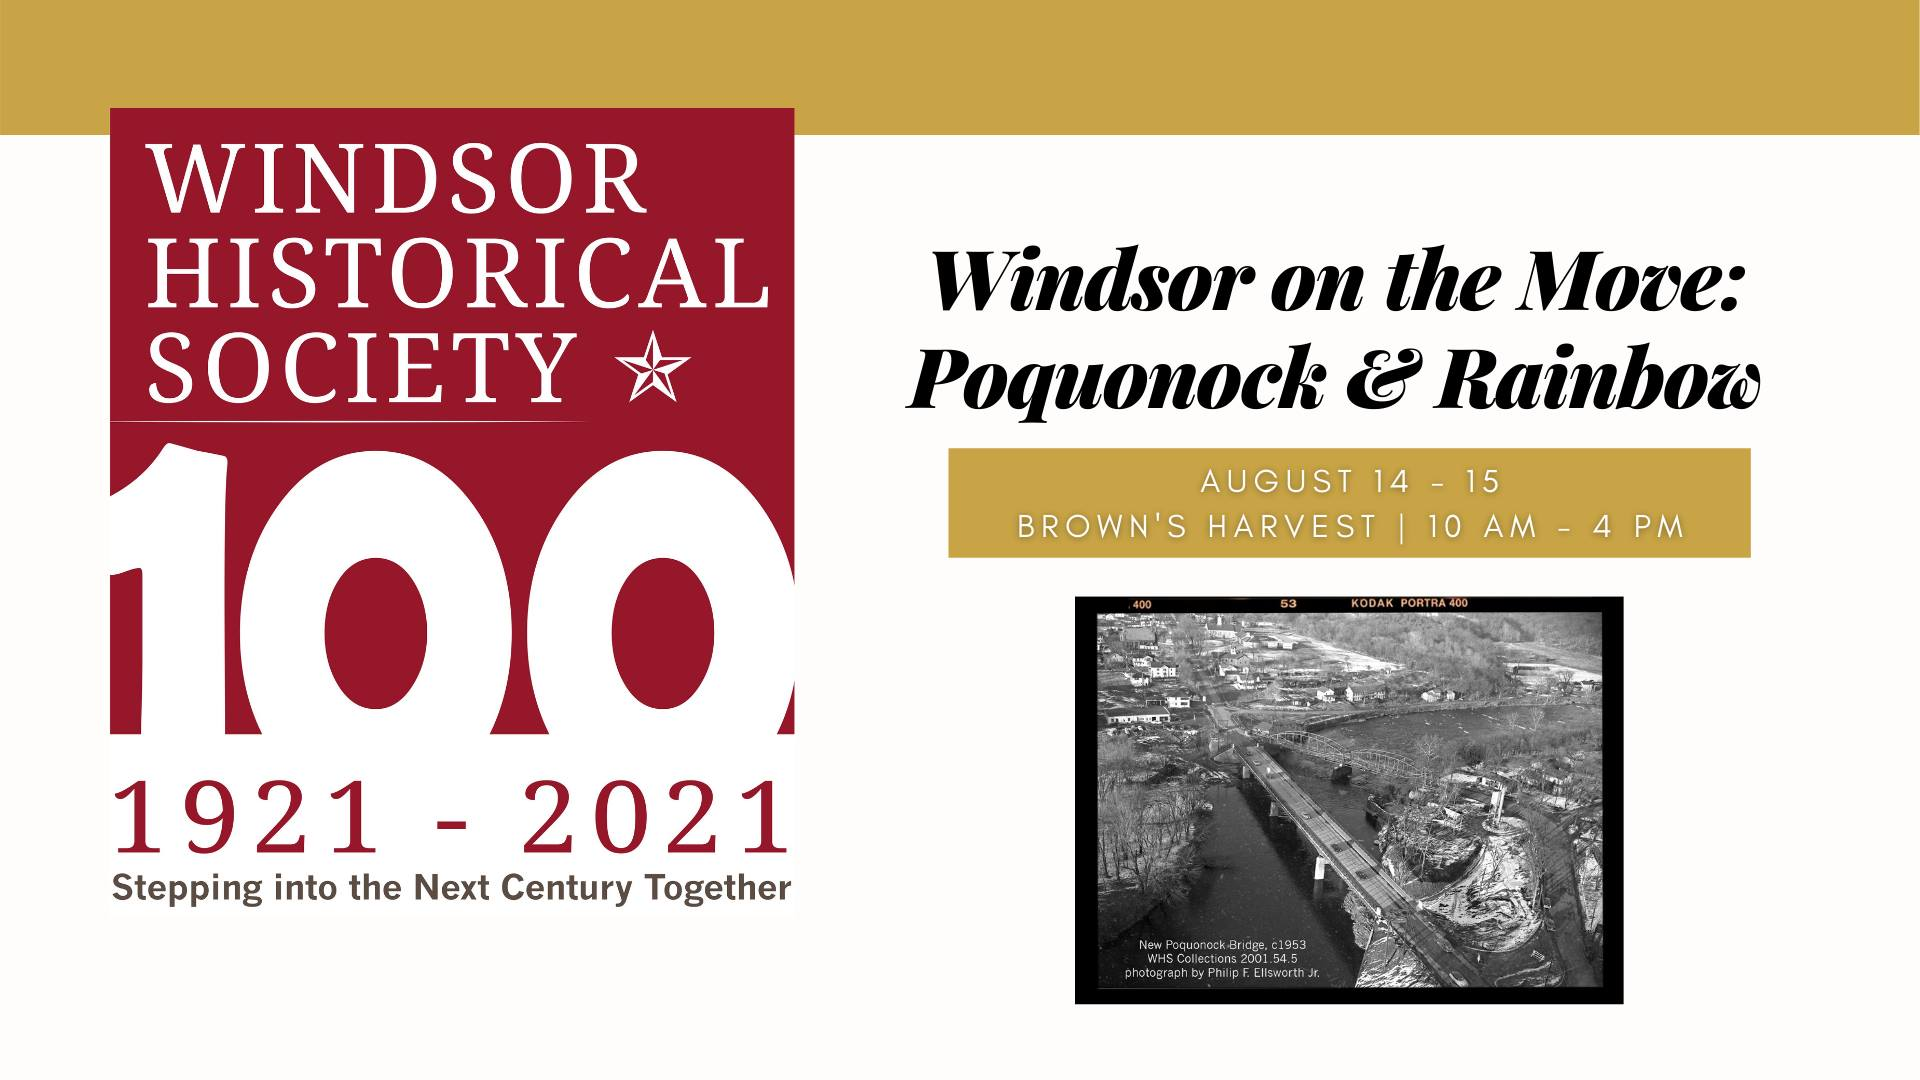 Windsor on the Move: Sharing Stories in Windsor Neighborhoods - Poquonock and Rainbow